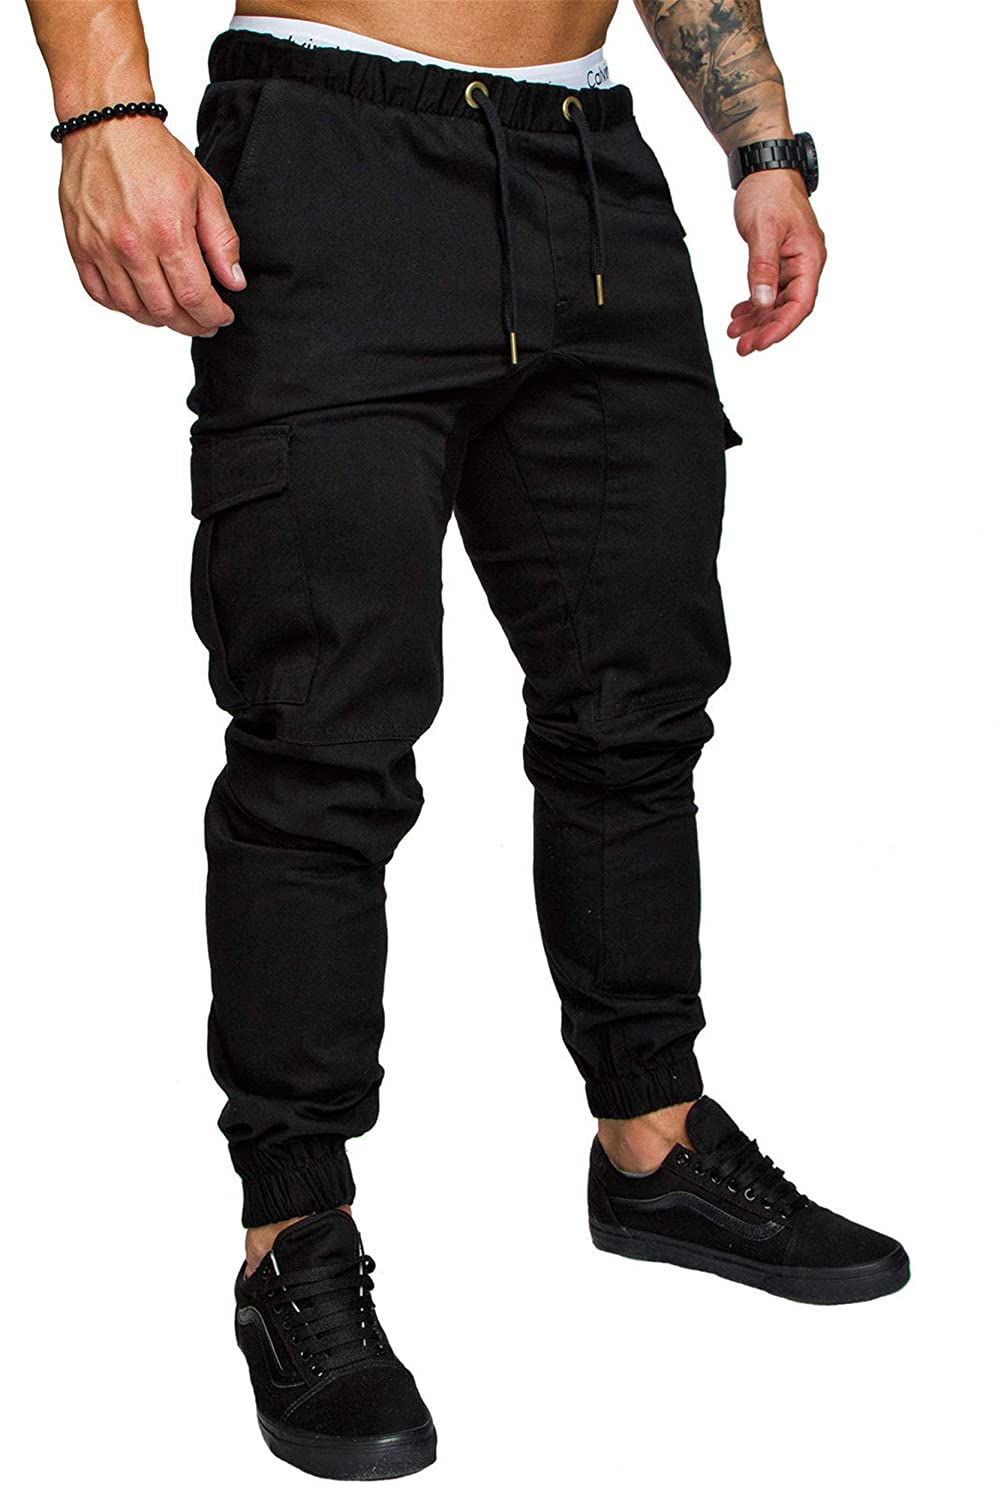 Men's Casual Pants Slim Fit Drawstring Jogger Pant Chino Trousers Sweatpants with Pockets (XX-Large,Black)